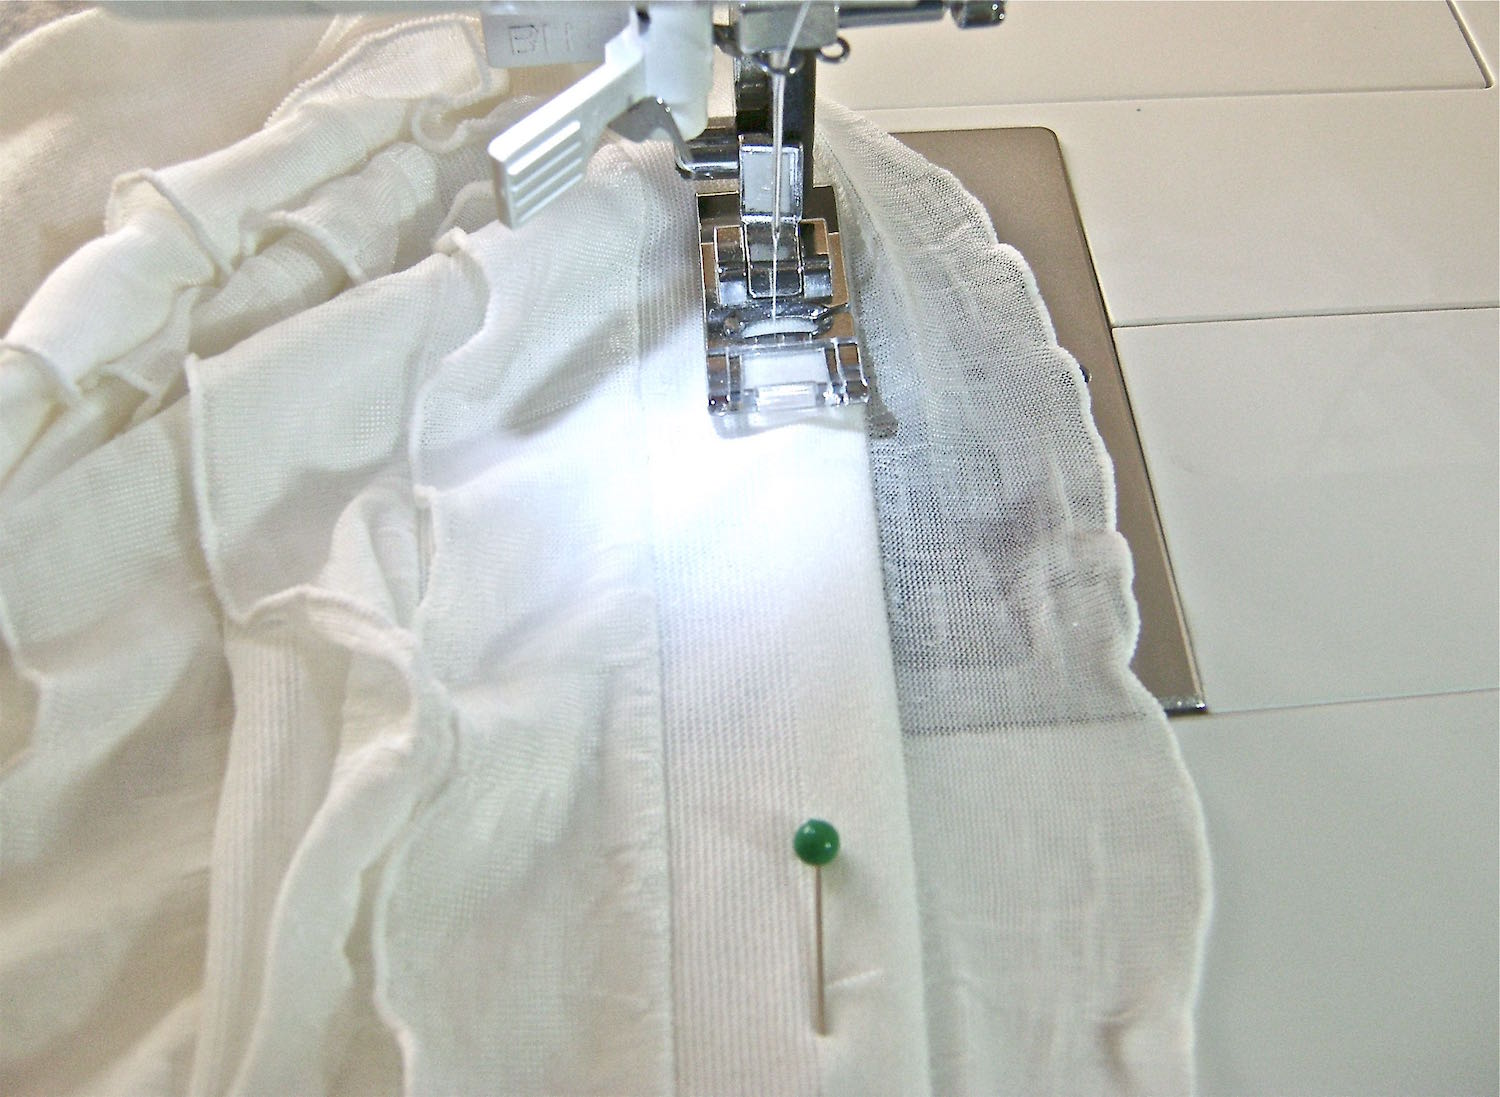 step 14 - Sew the front neck edges down by sewing underneath the first row of ruffles. The stitching will be hidden when the ruffle is in place. Top stitch the back neckband.